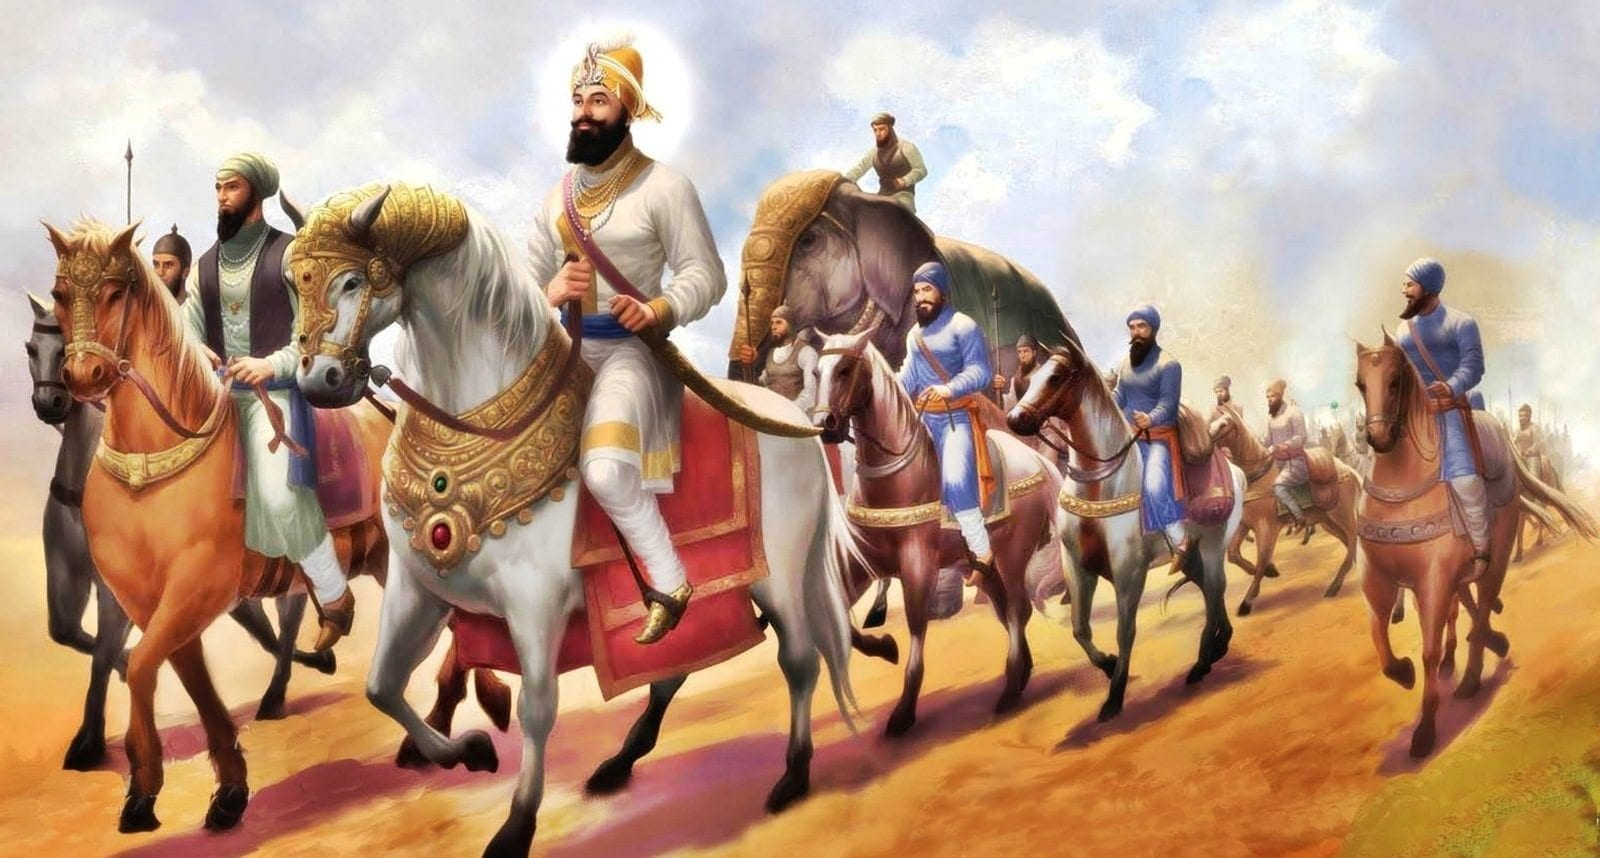 Guru-Gobind-Singh-Ji-Animated-Wallpaper